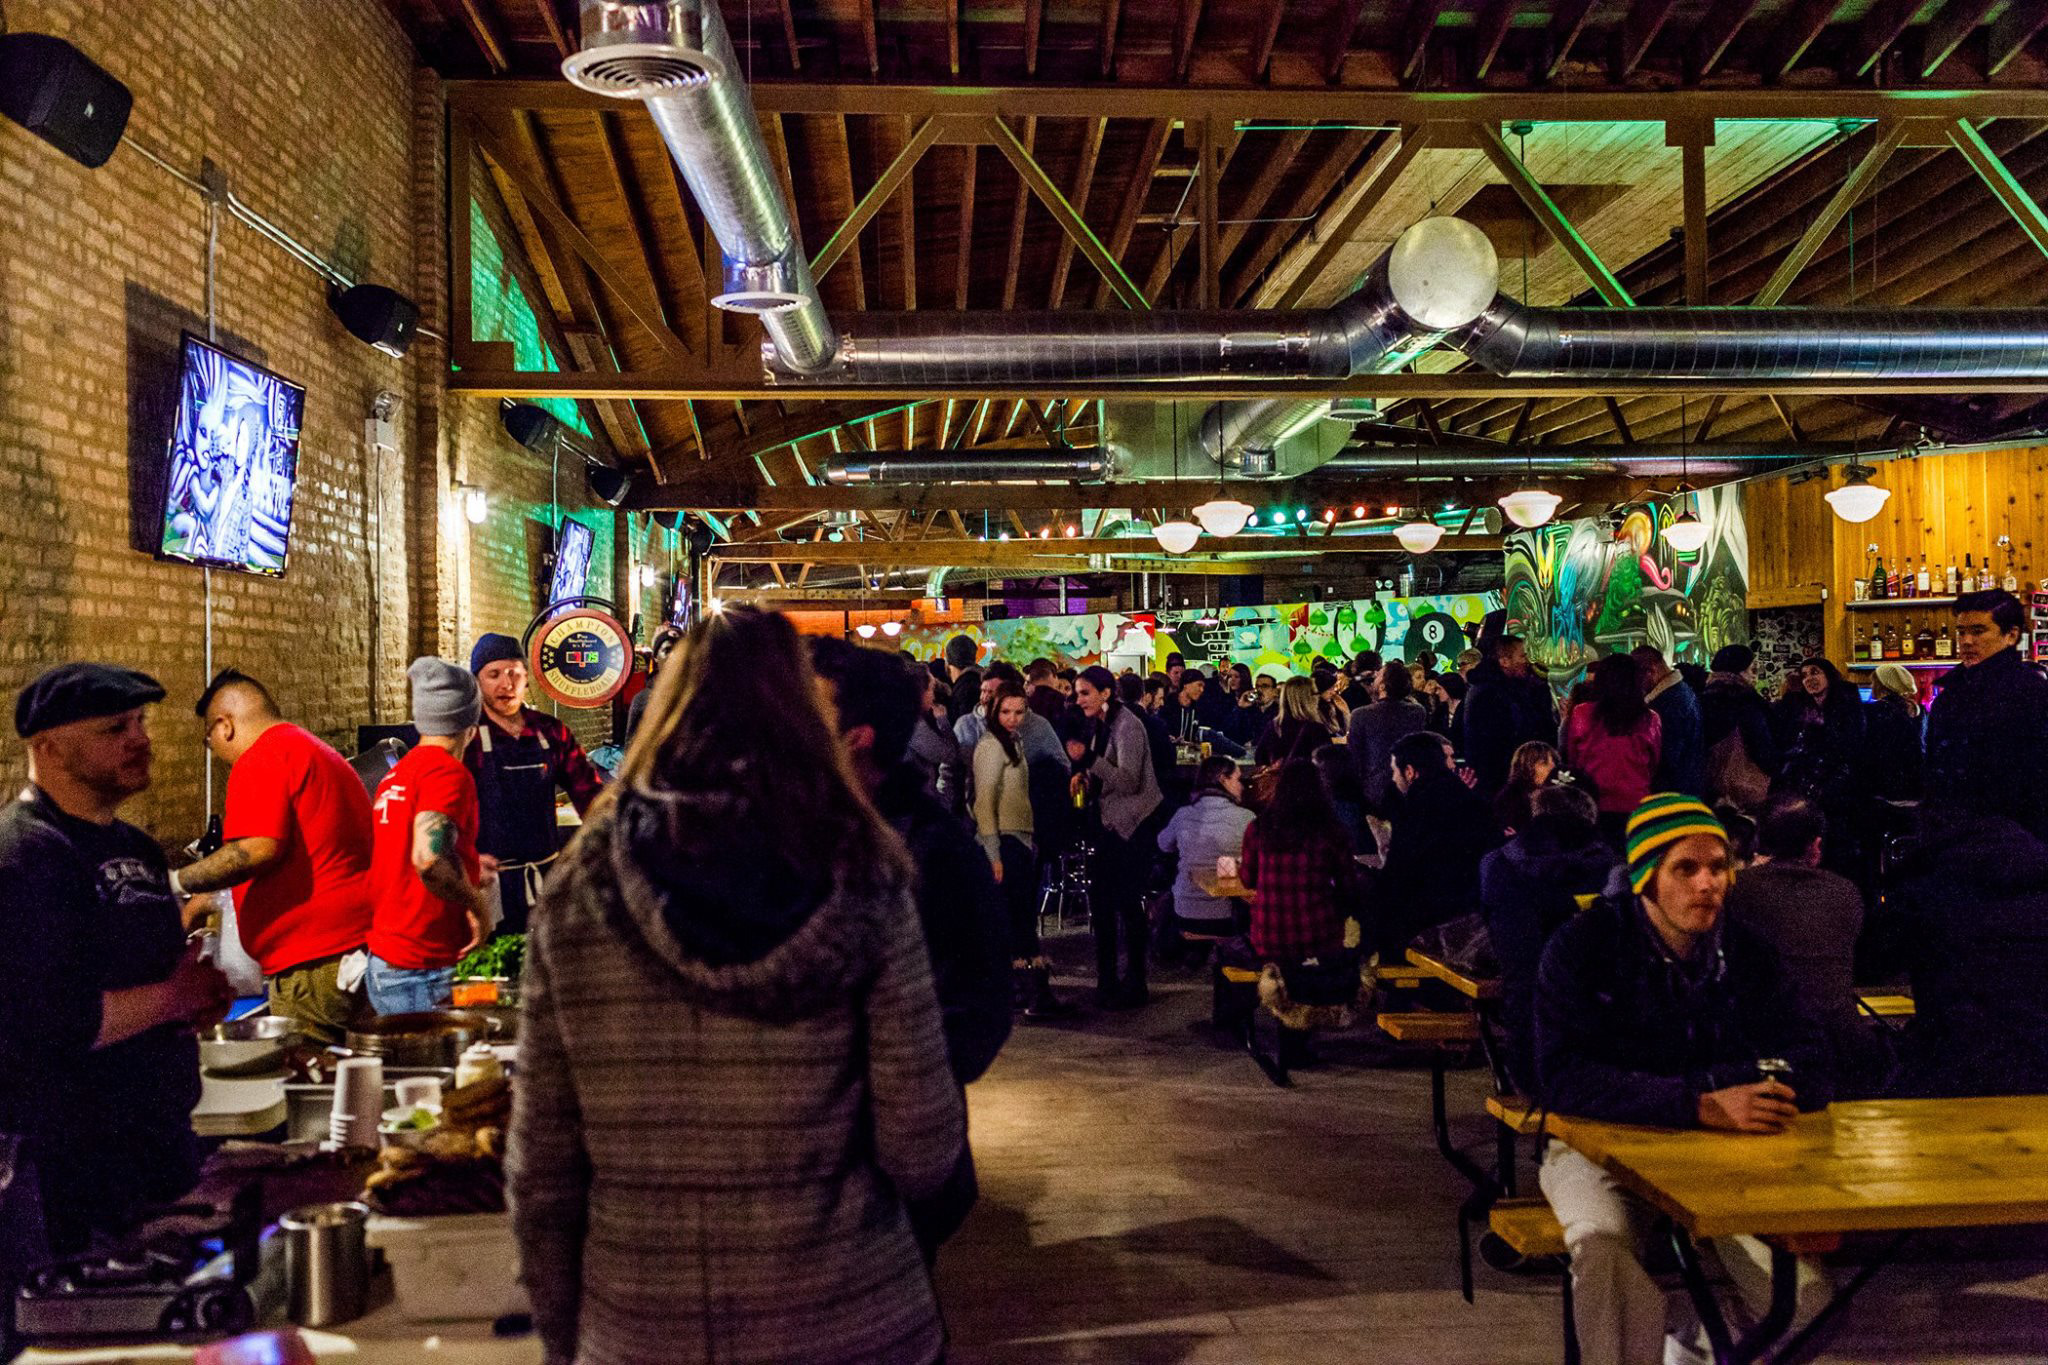 Sauced Night Market at Emporium Arcade Bar in Logan Square.